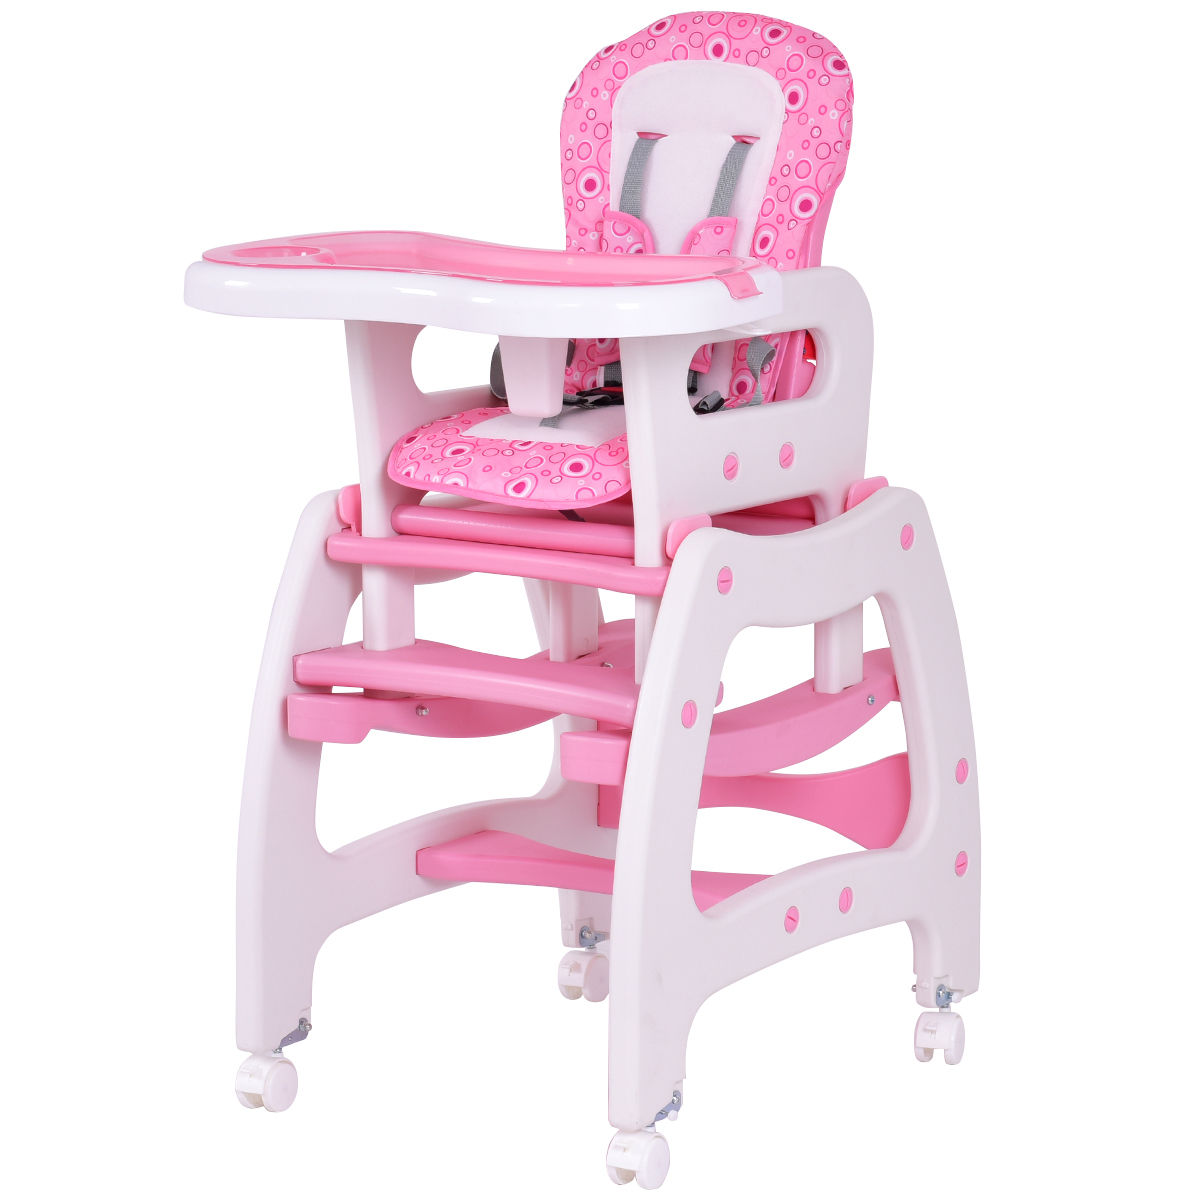 adult baby high chair cover hire east yorkshire costway 3 in 1 convertible play table seat booster toddler feeding tray pink walmart com